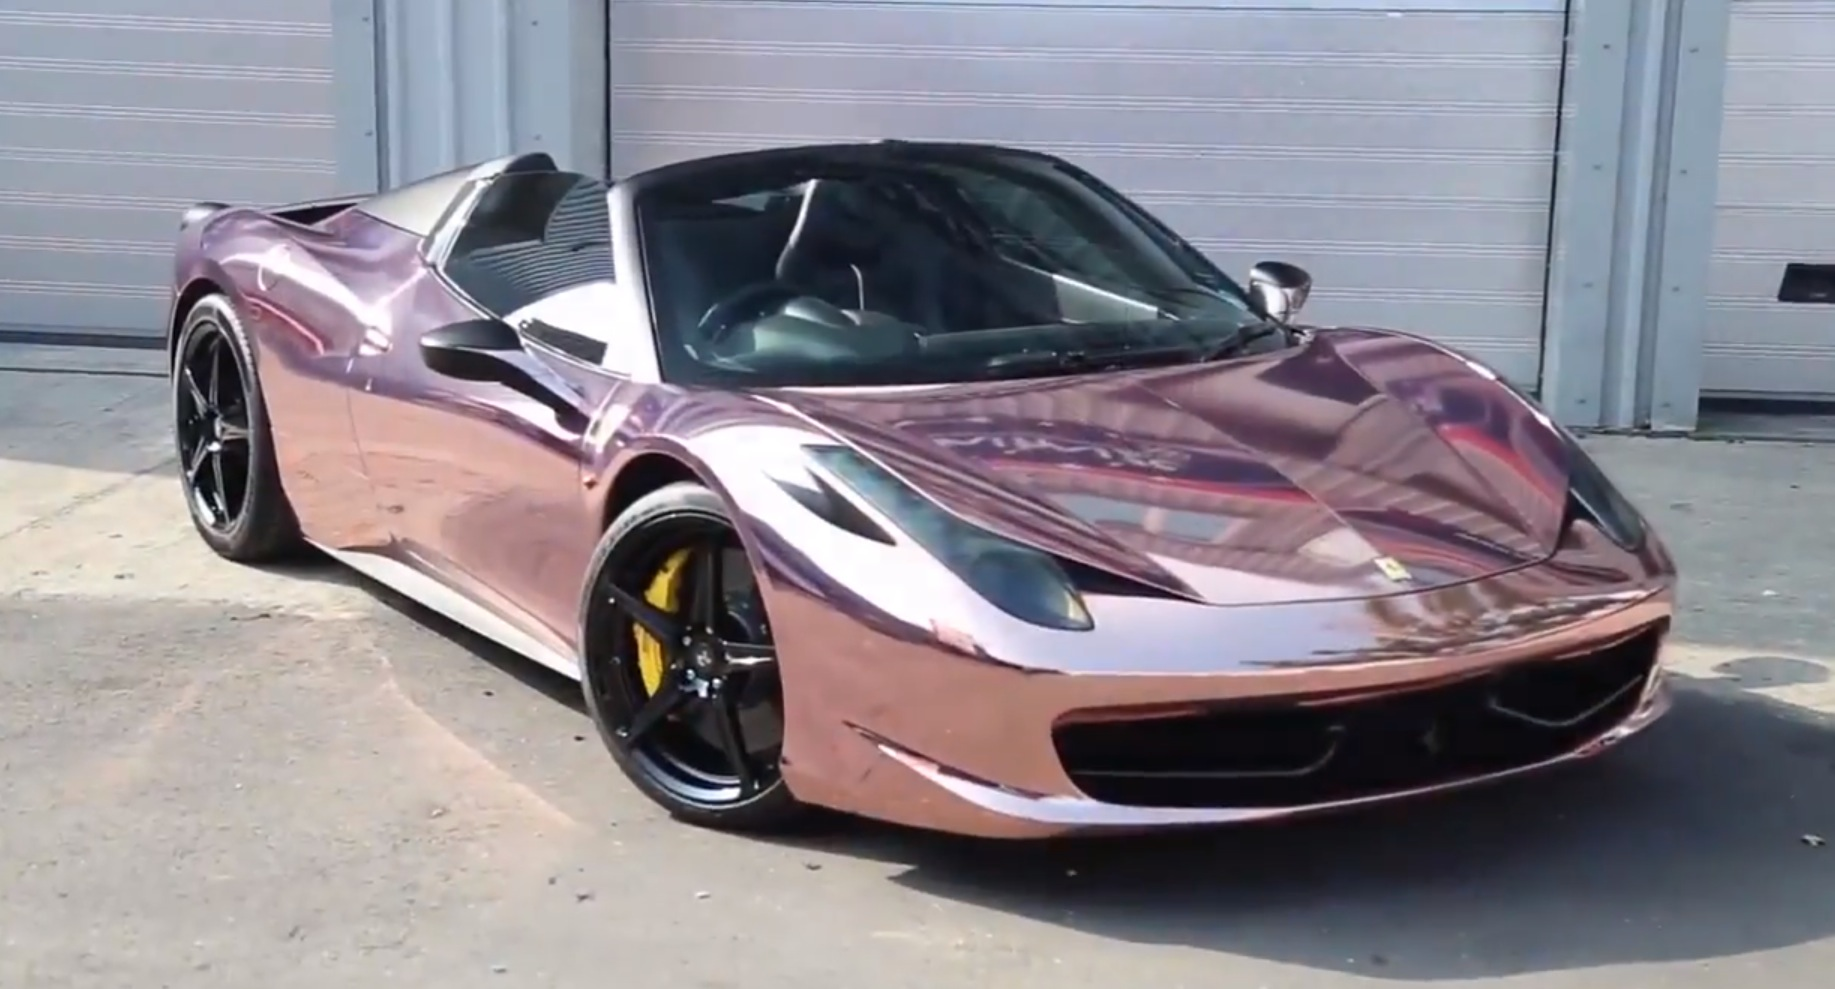 Rose Gold Ferrari 458 Spider With Titanium Exhaust Is A